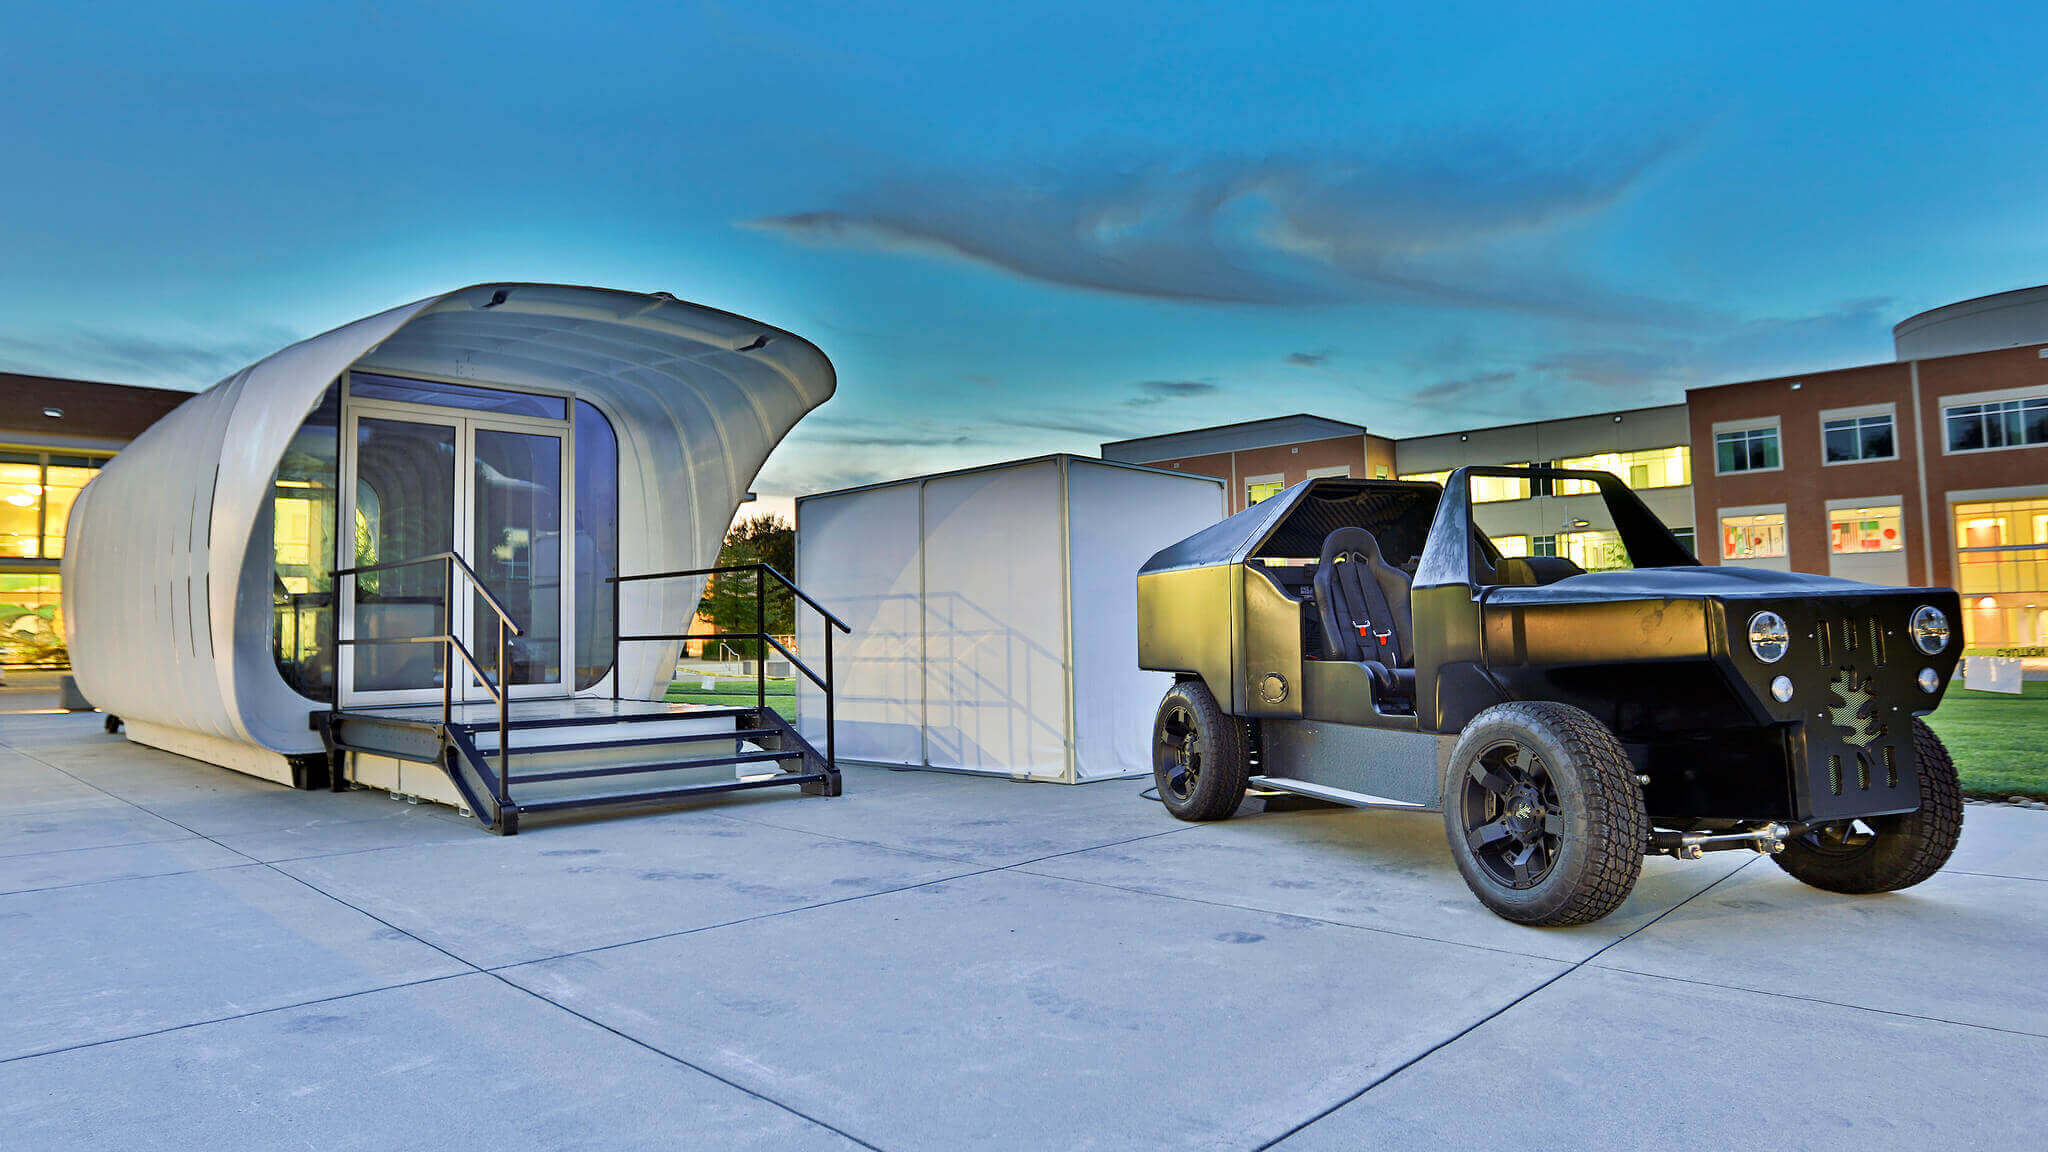 Boffins invent 3D Printed Home and Car with Bi-Directional Energy Flow | All3DP